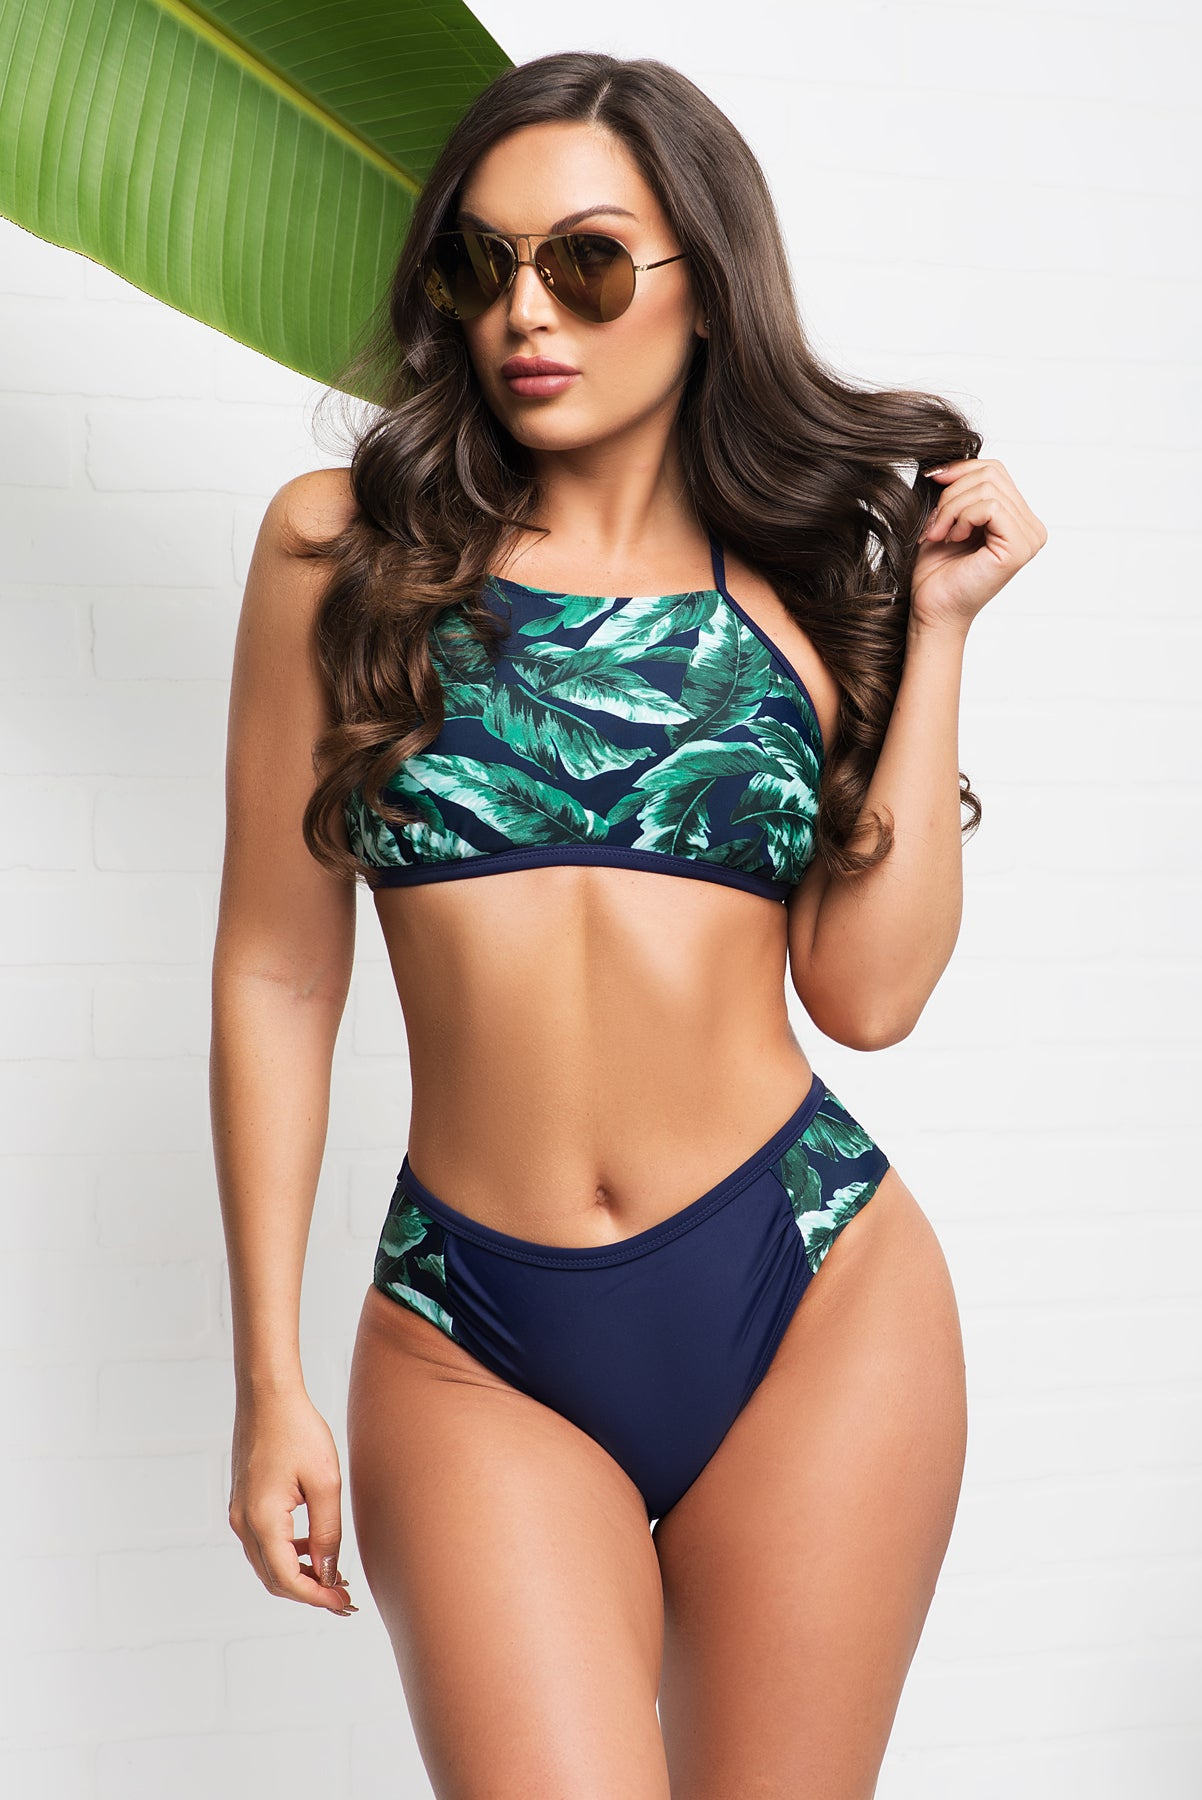 Ventura Beach Two Piece Swimsuit